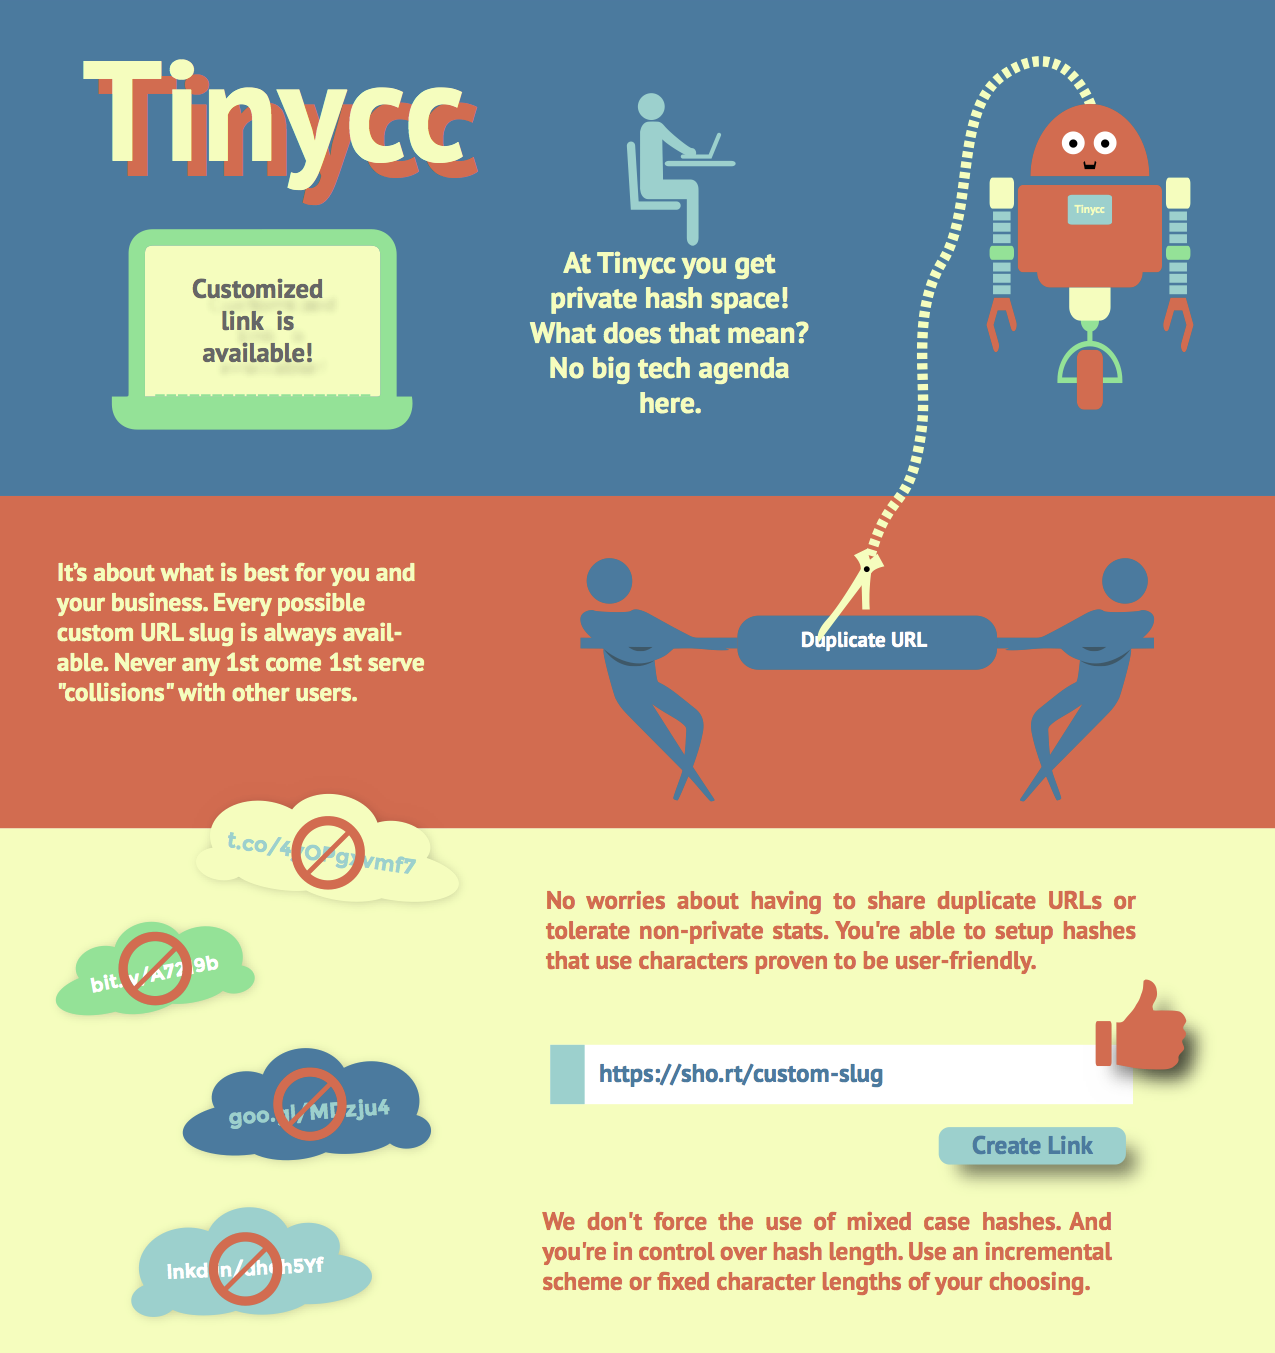 Why Tinycc is a better URL shortener